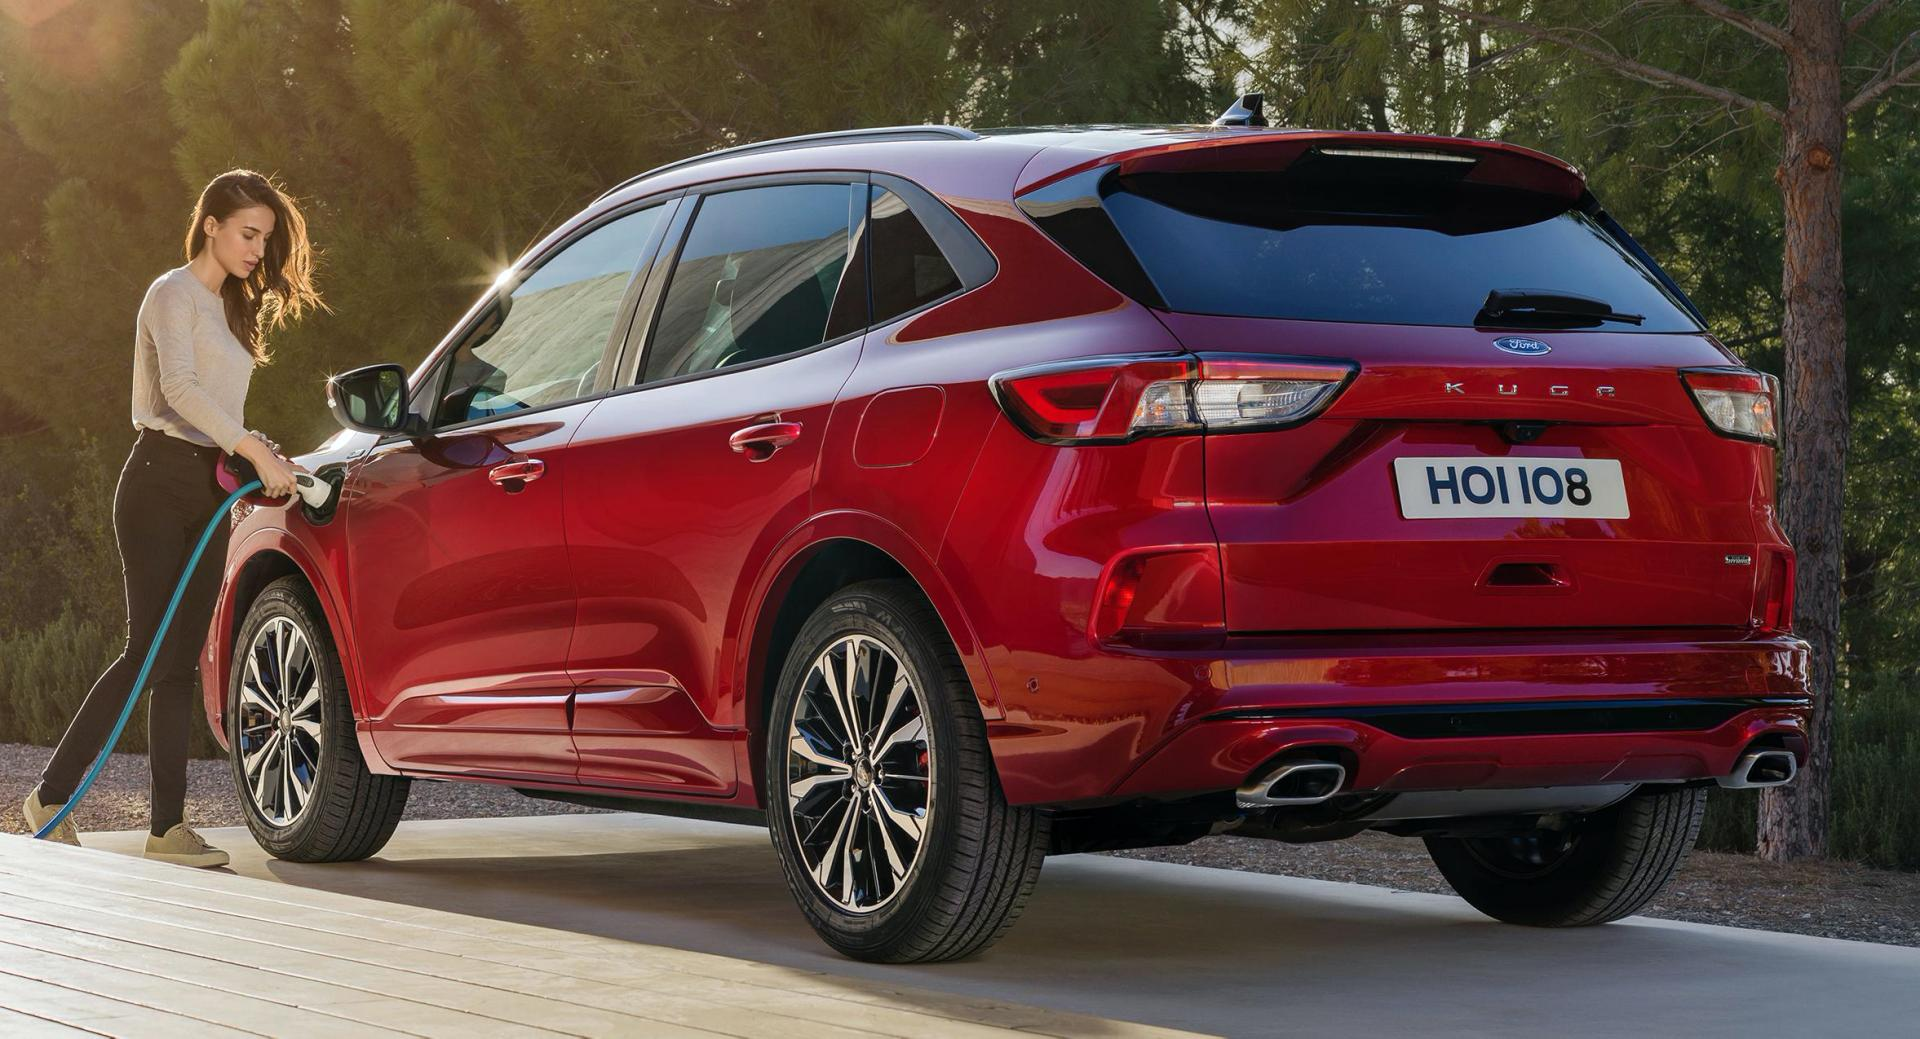 2020 Ford Kuga Starts From £23,995 In The UK, Adds £620 To ...